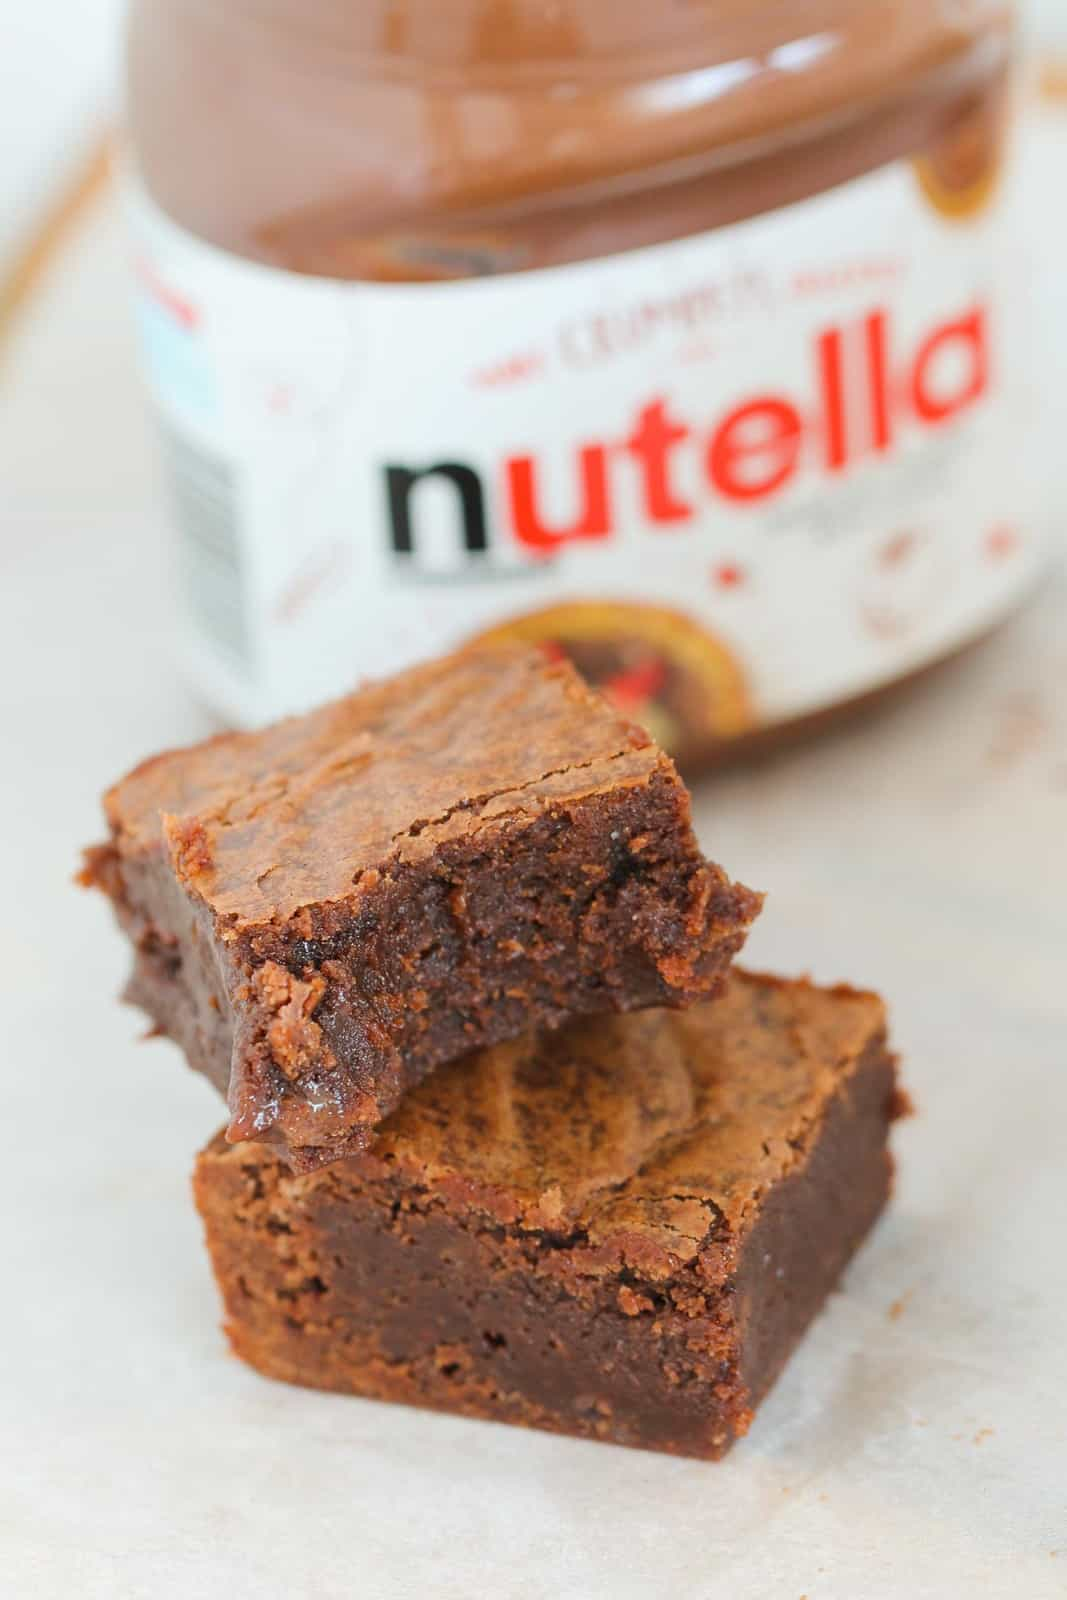 Pieces of chocolate brownie in front of a jar of Nutella Chocolate Hazelnut Spread.